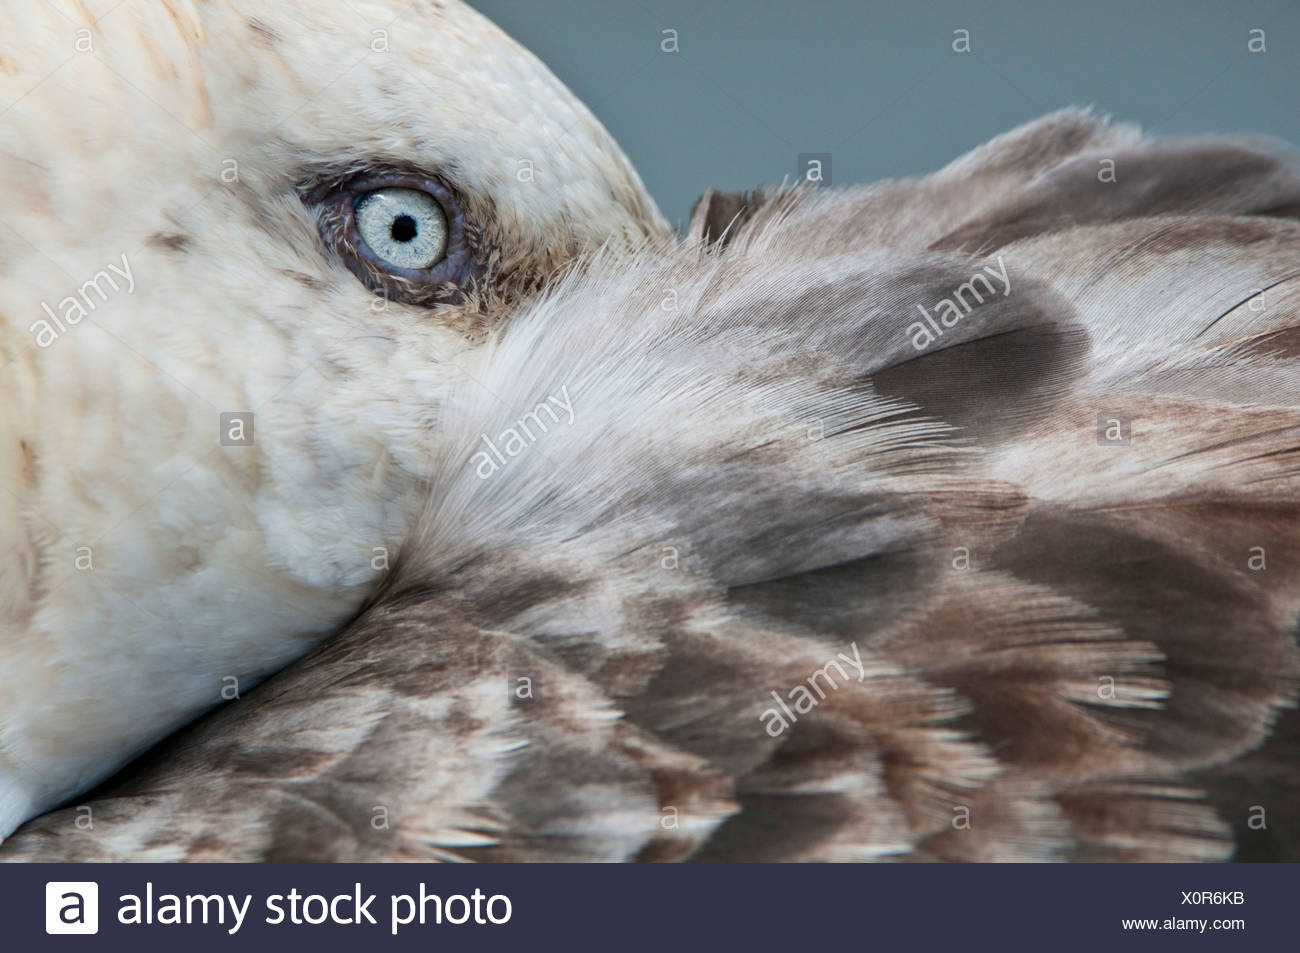 Southern Giant Petrel resting with bill tucked under its wing, Stromness, South Georgia, South Atlantic. - Stock Image